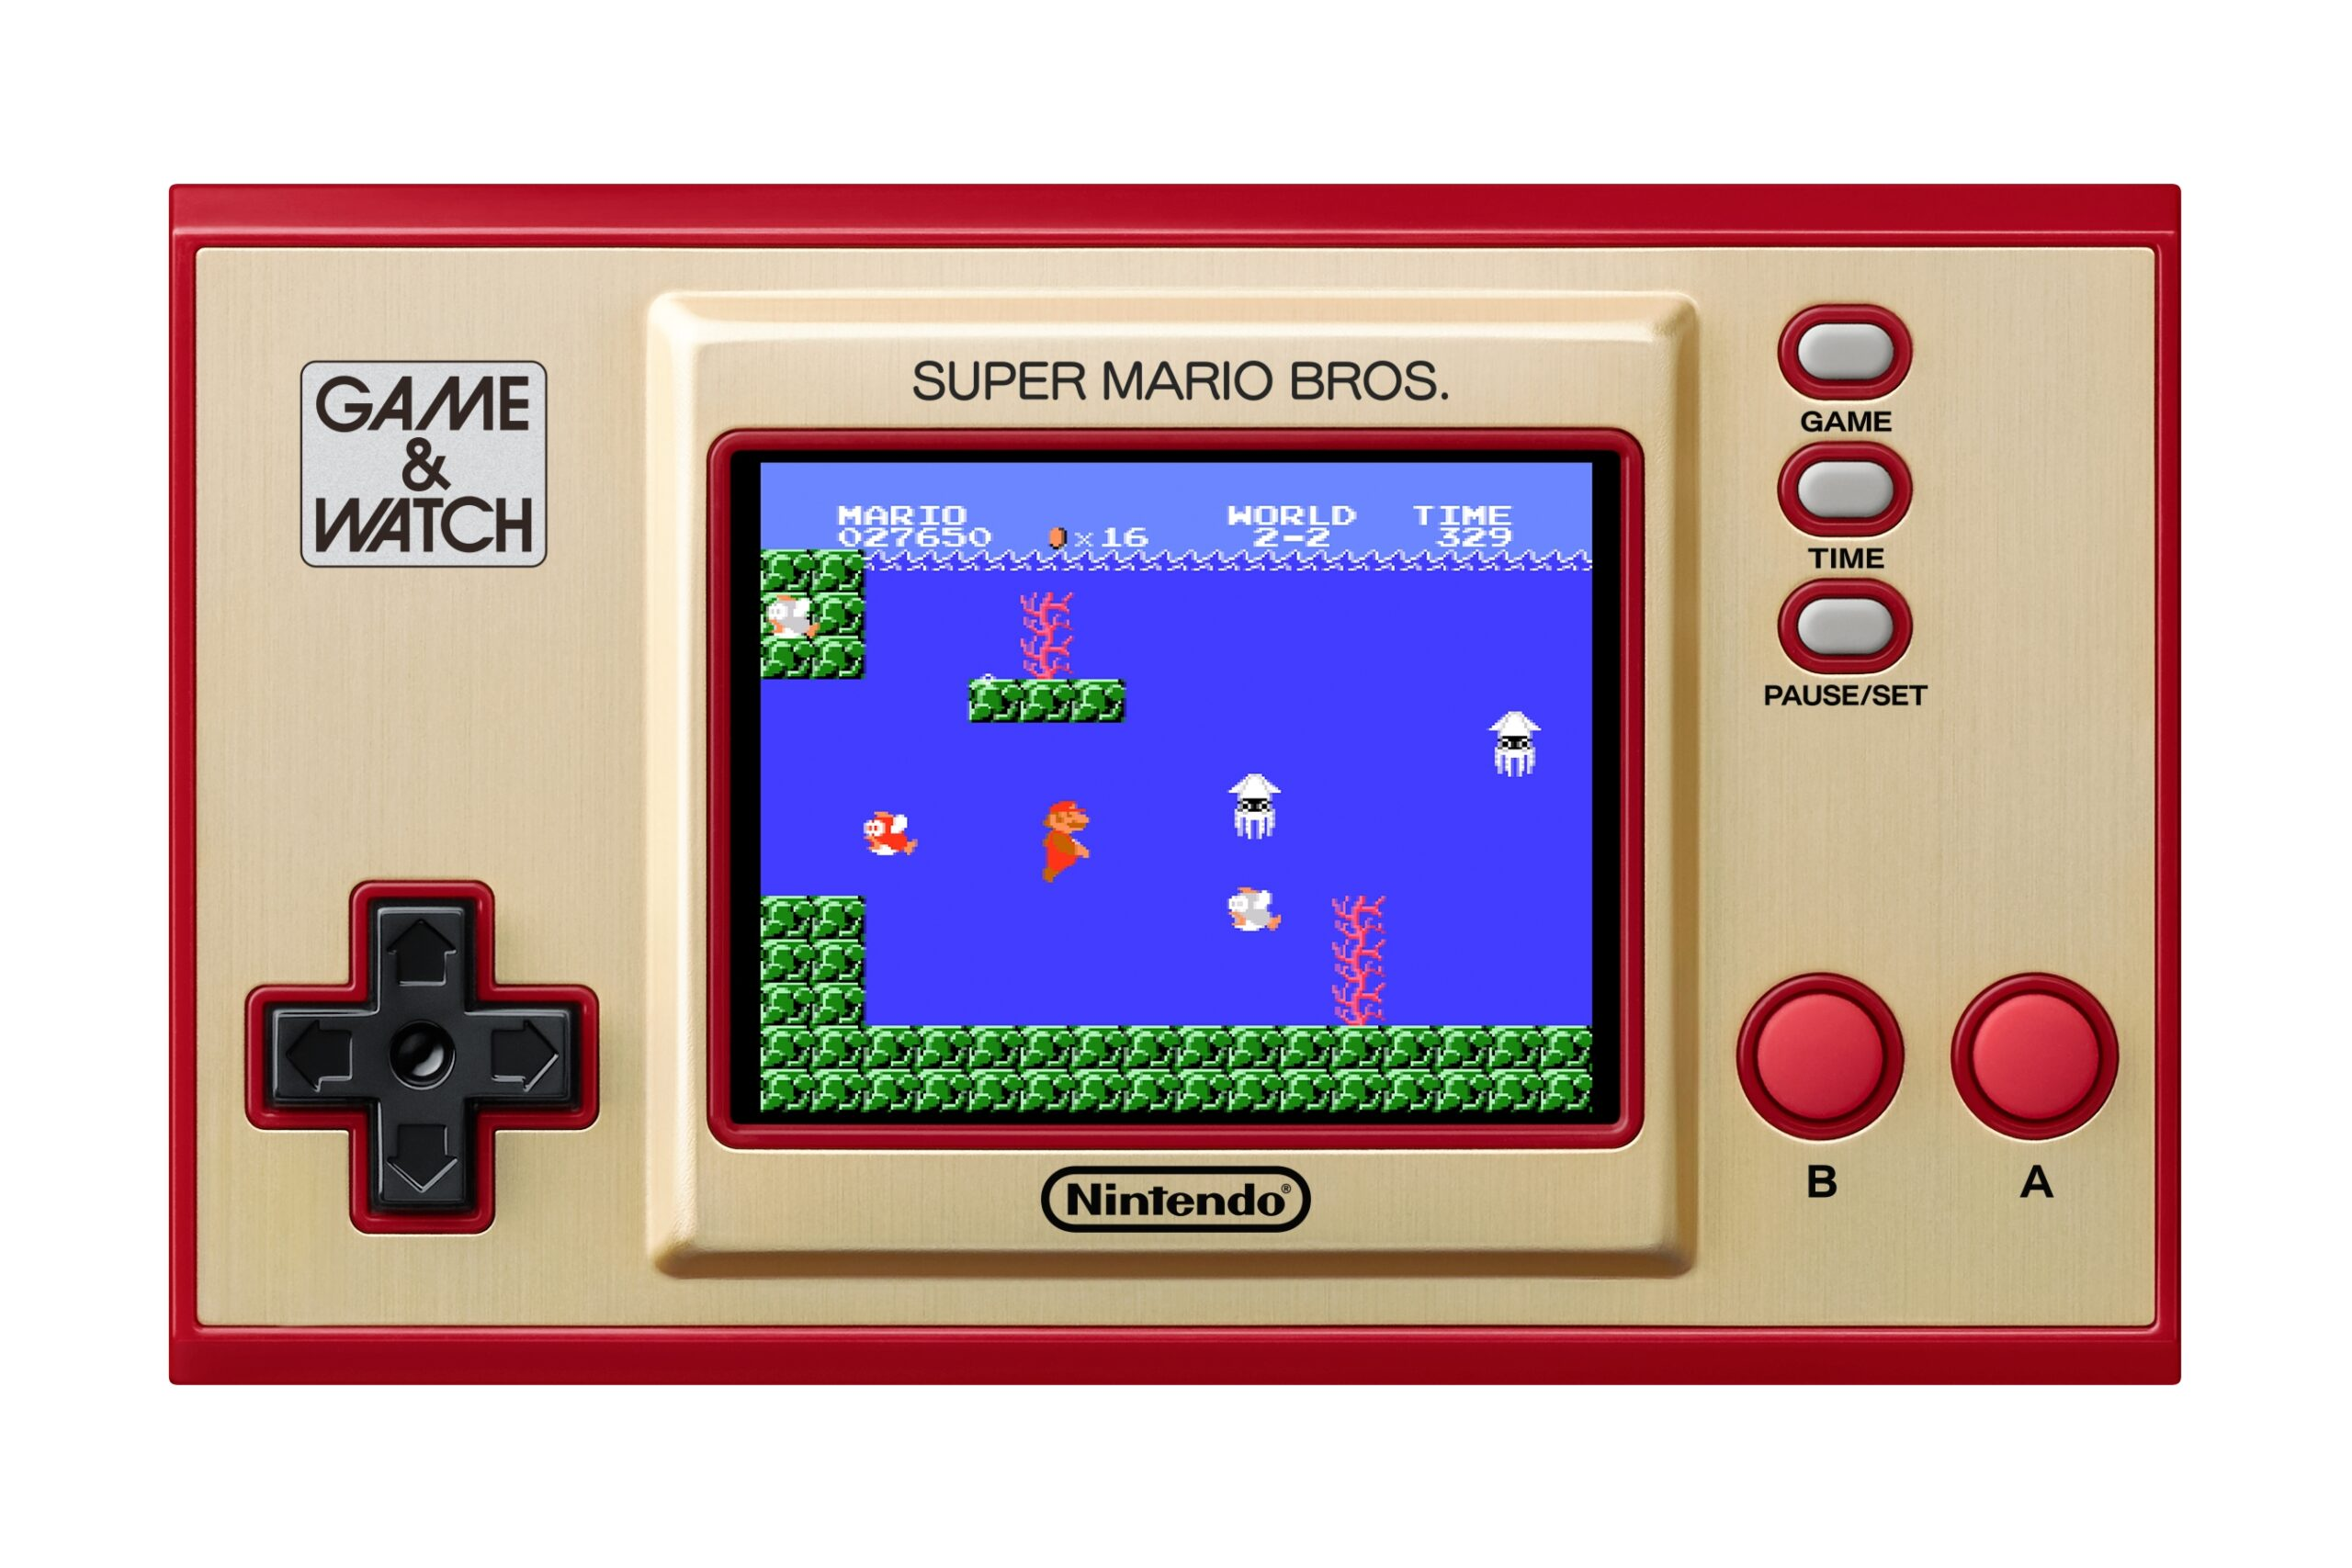 Game-and-Watch-Super-Mario-Bros_2020_09-03-20_009